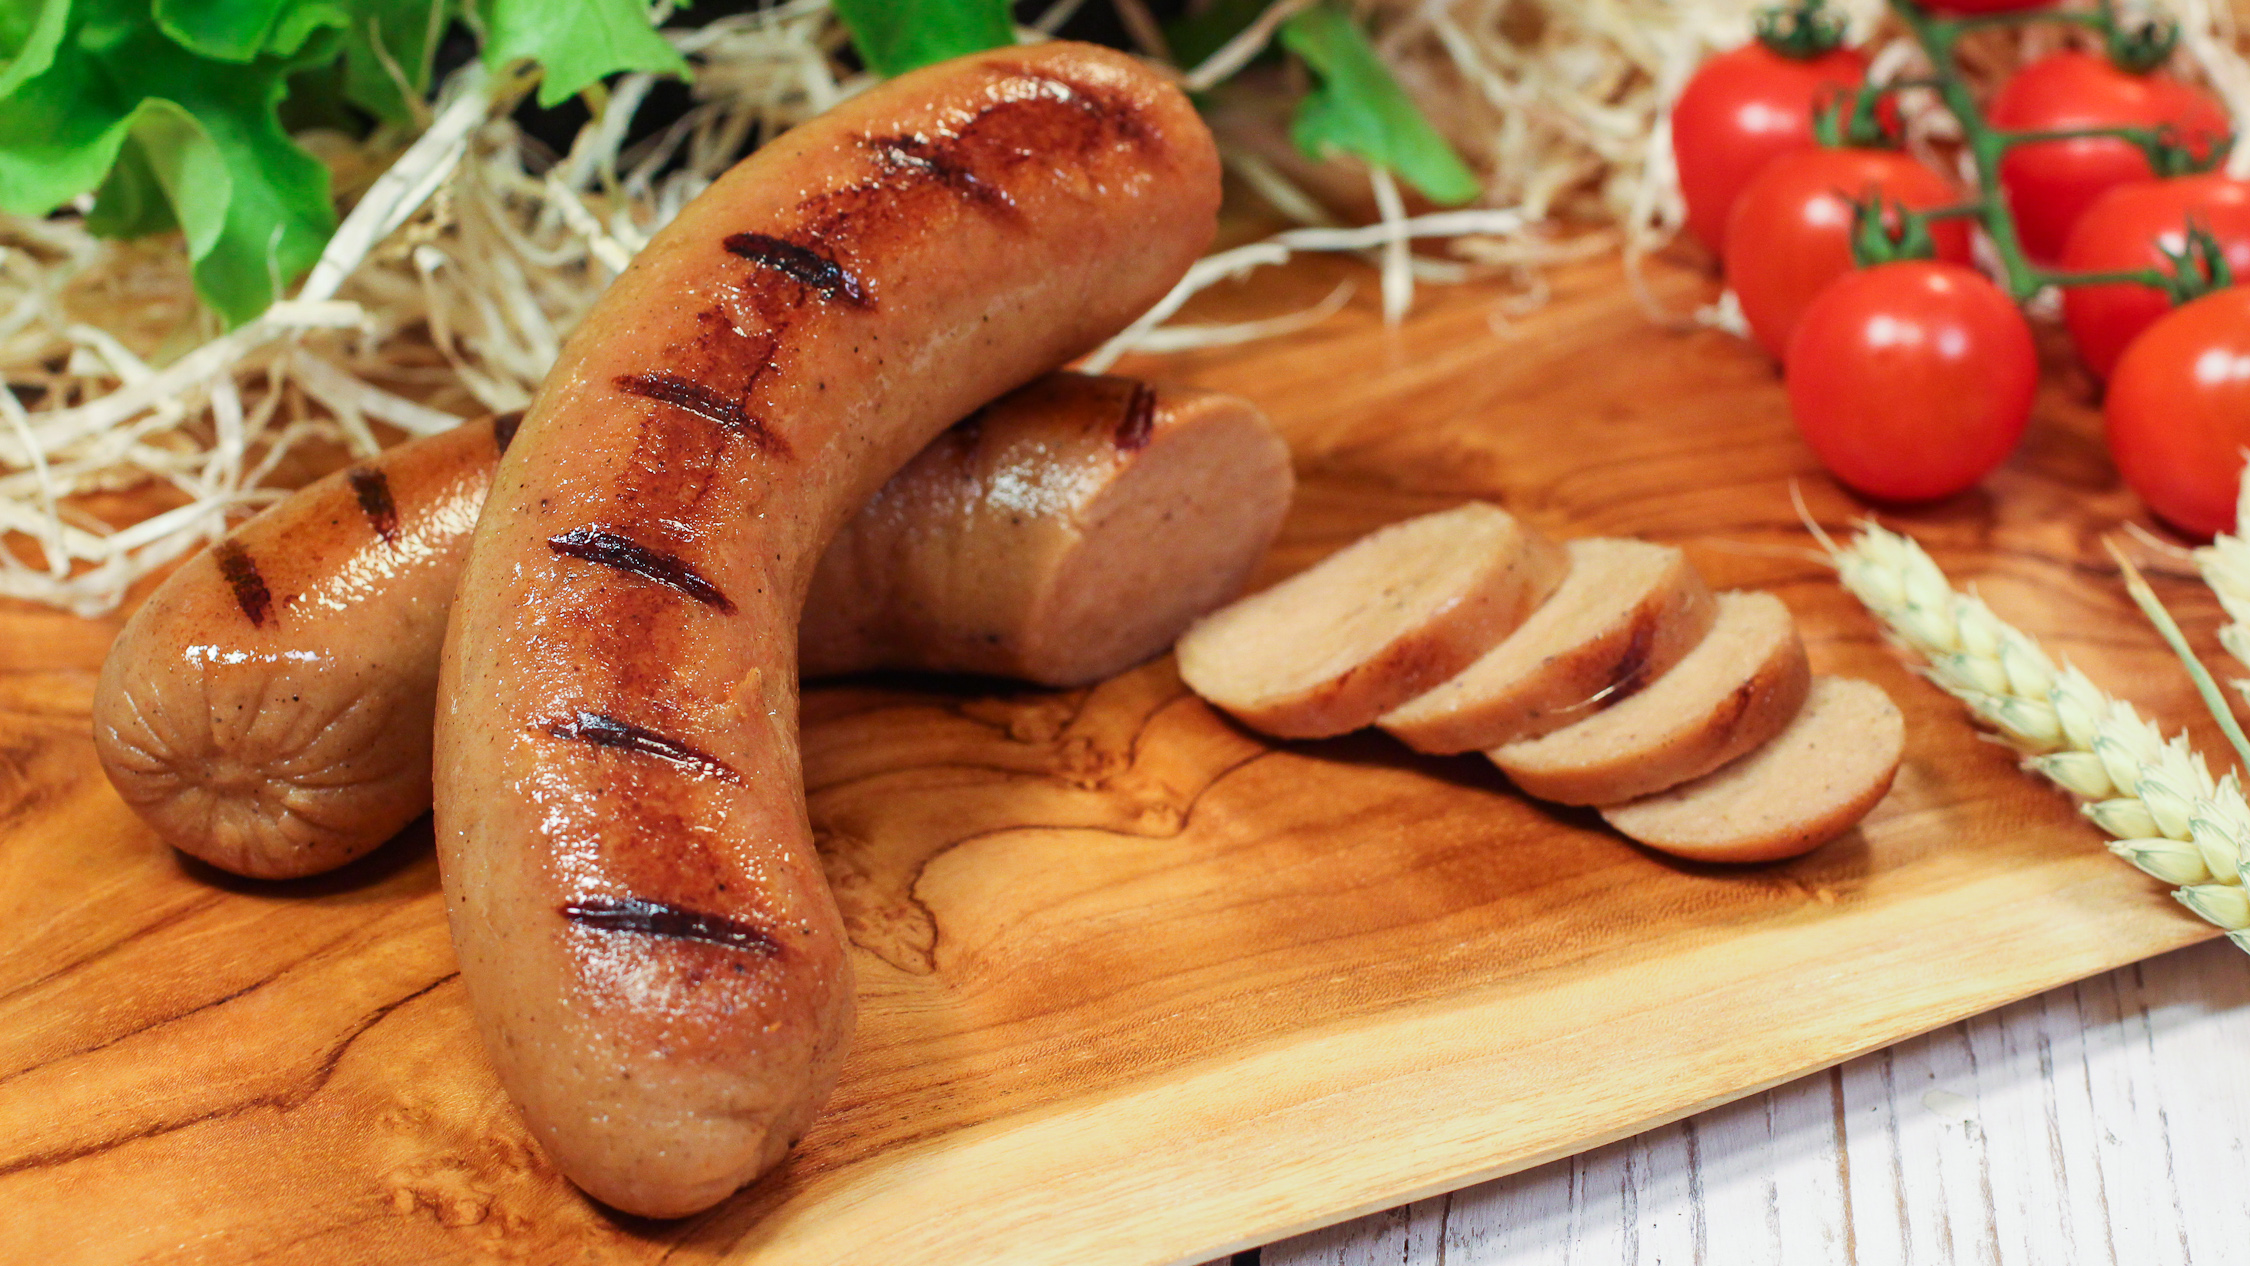 Farmhouse_Sausage-2.jpg